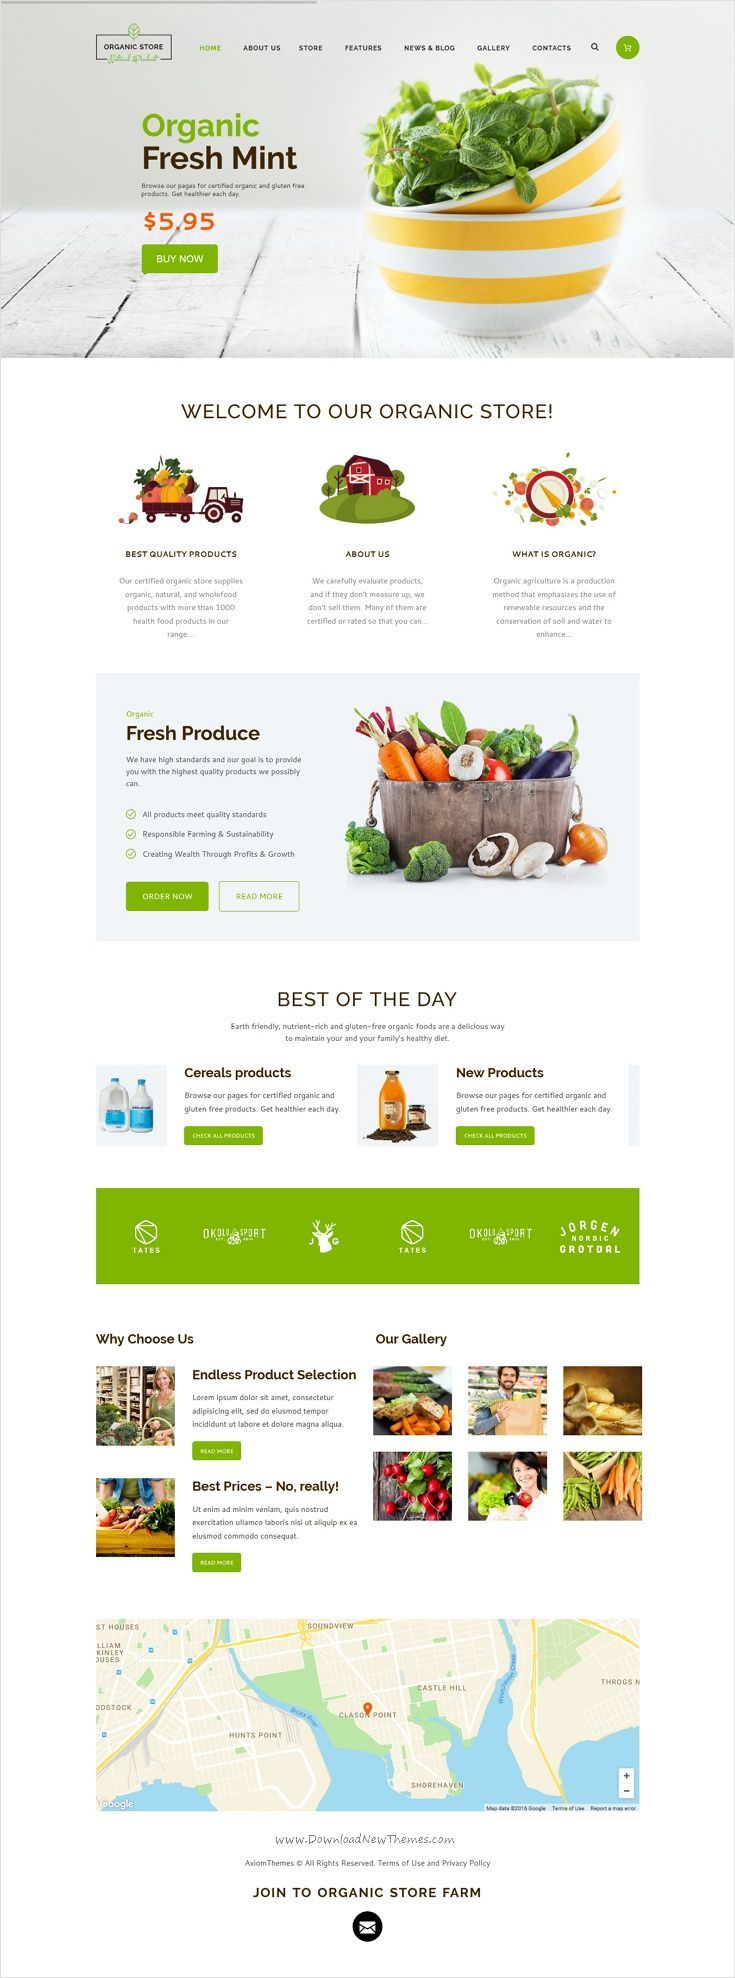 Top 5 Best Practices For Online Shopping Websites Web Design Tips Food Web Design Food Website Design Food Design,L Shaped Wooden Sofa Designs For Living Room